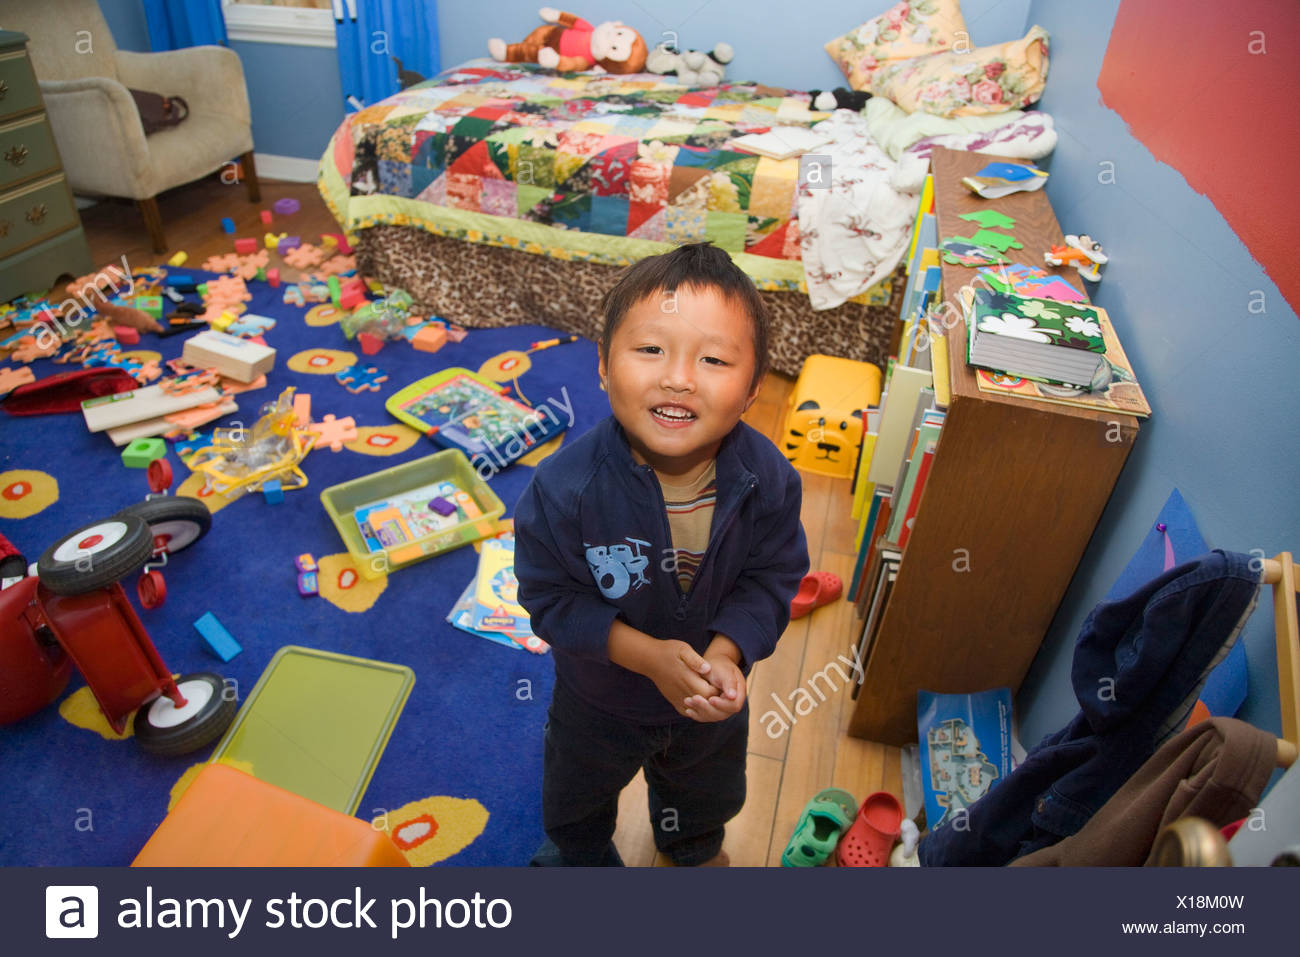 Asian boy in messy bedroom - Stock Image